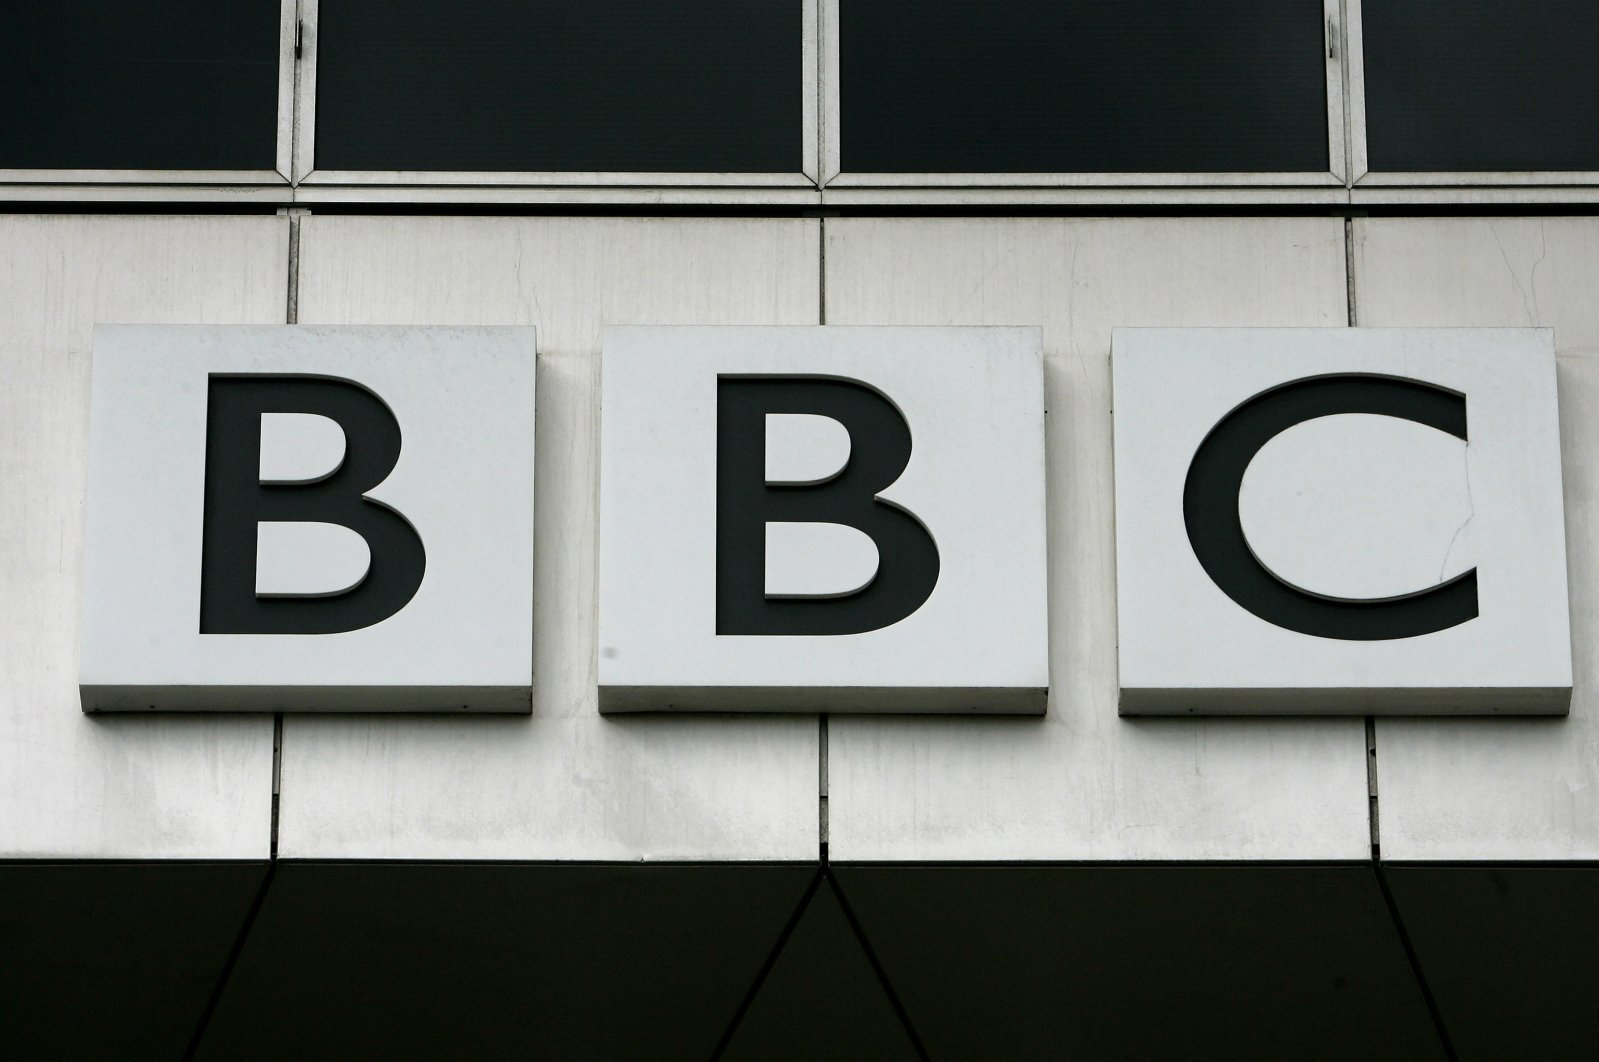 The British Broadcasting Corporation (BBC) sign can be seen on their offices at White City in London, Oct. 17, 2007. (AP Photo)